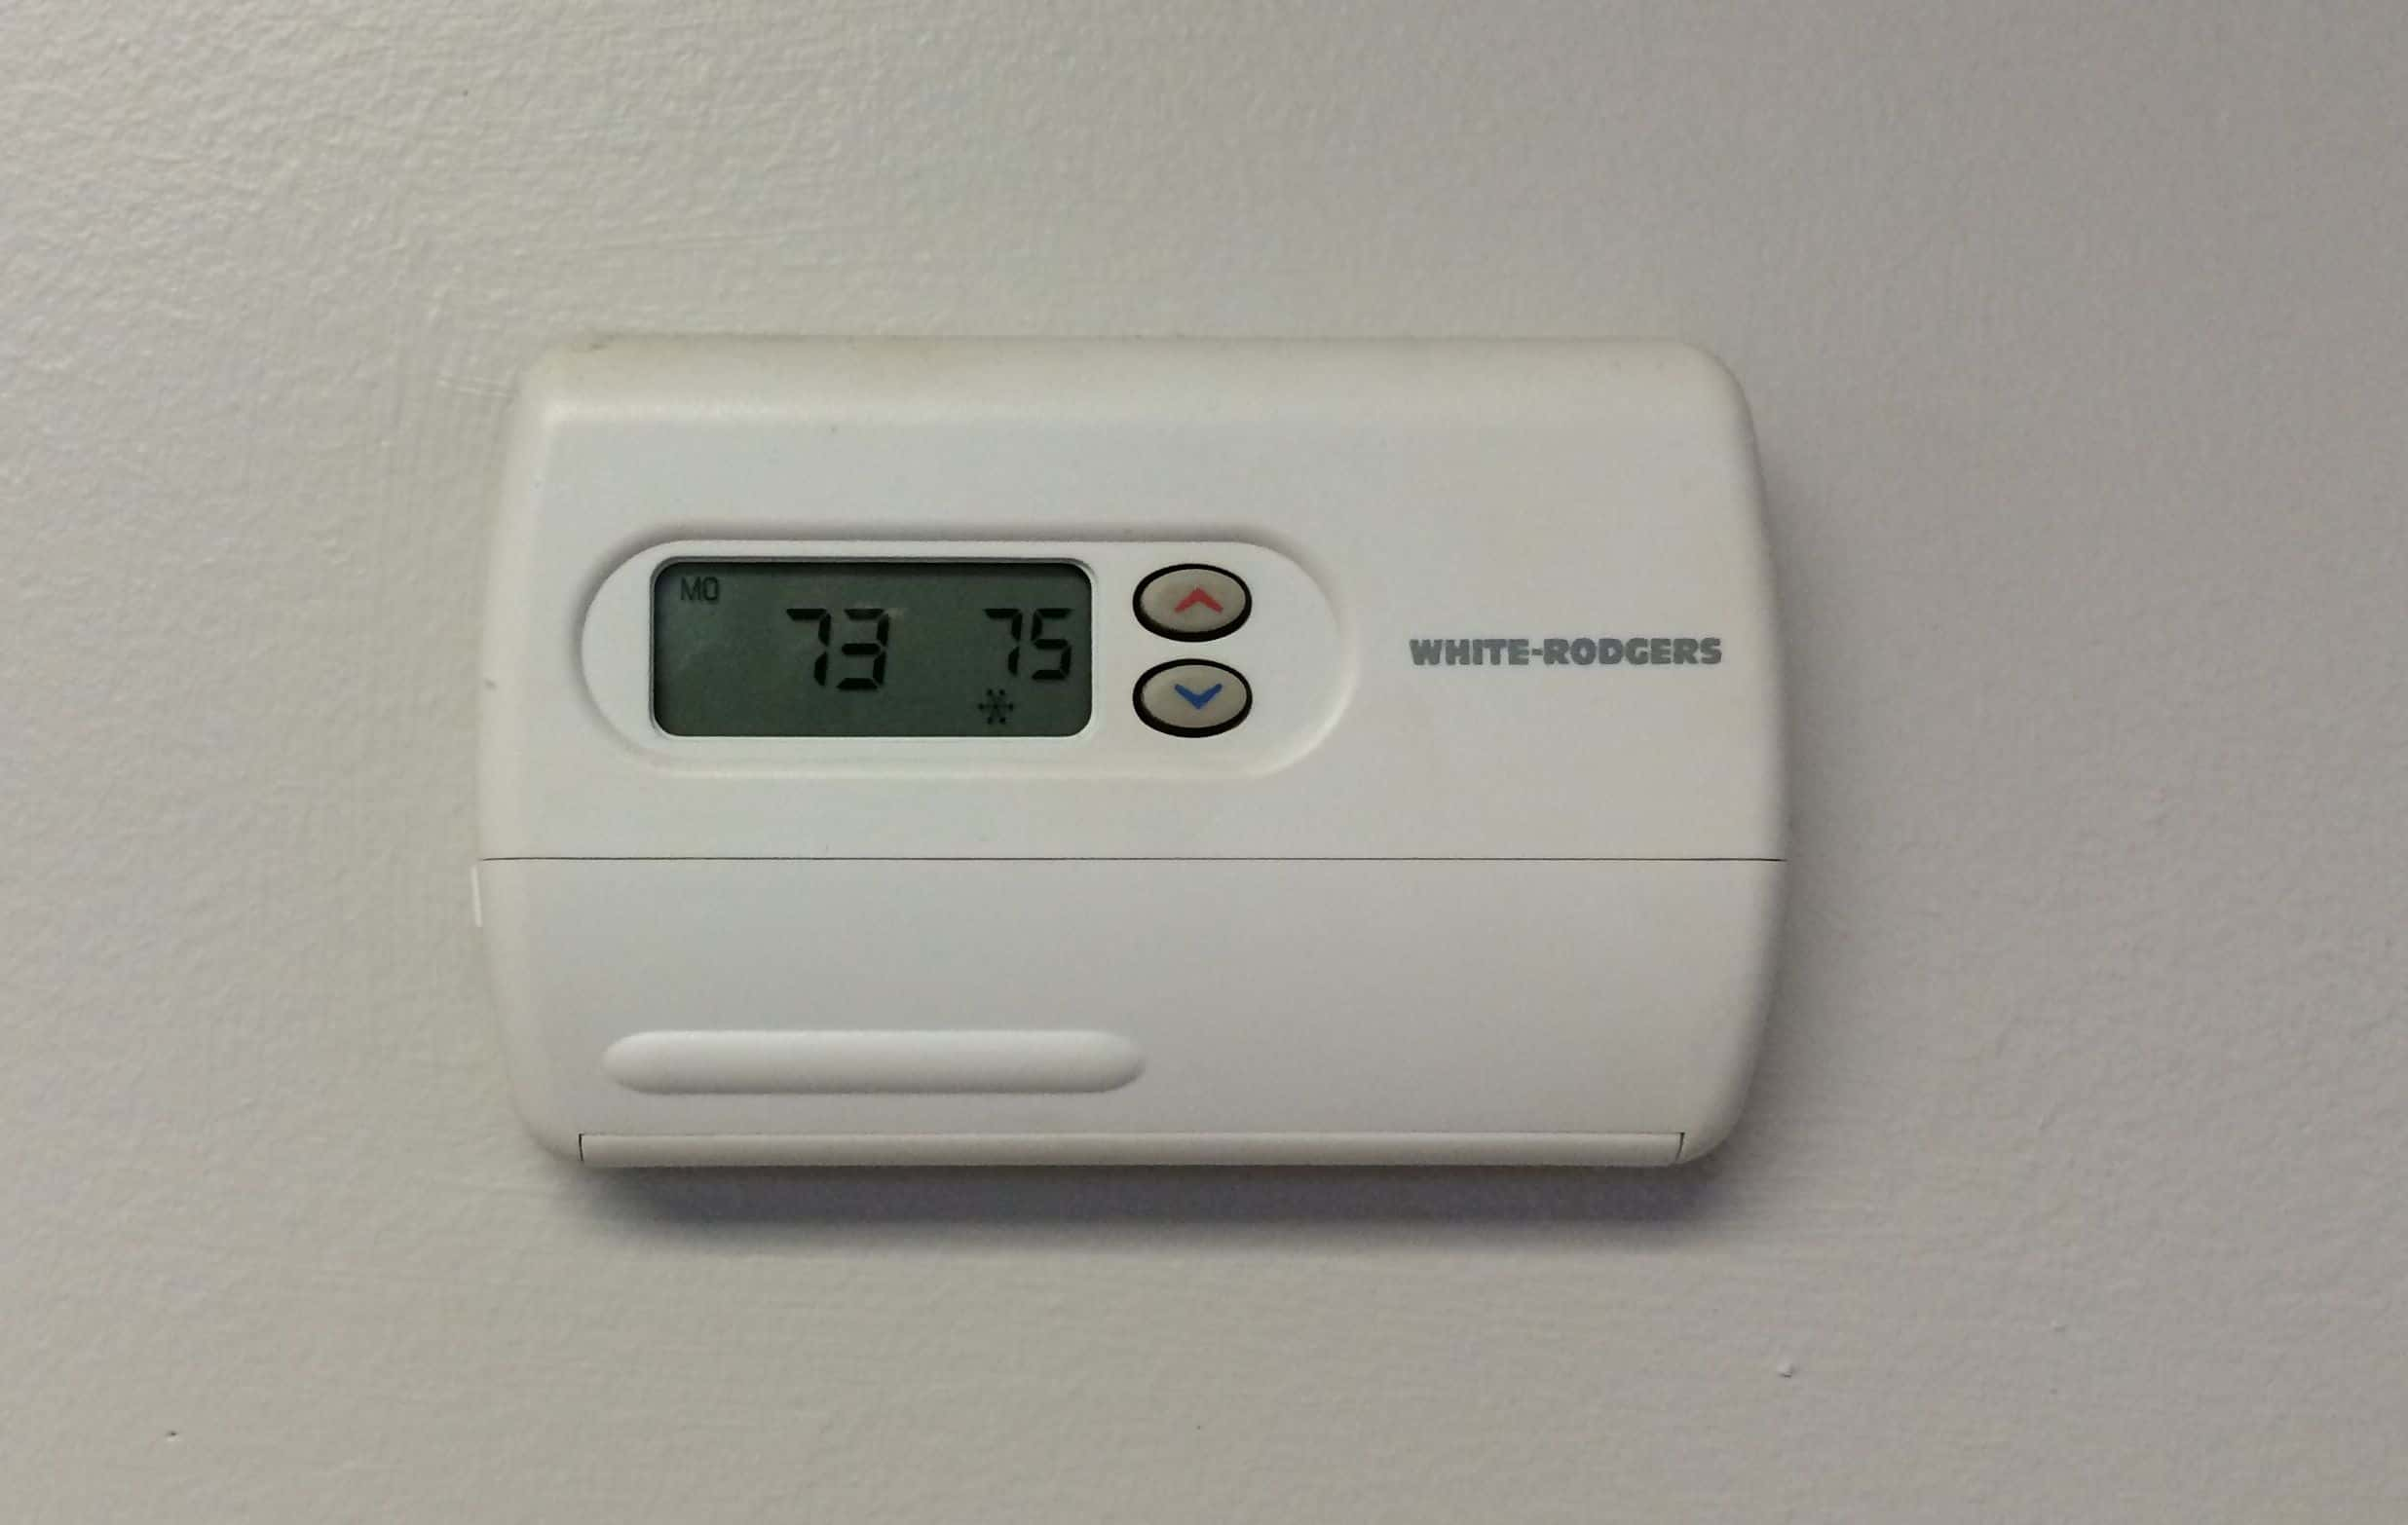 Michigan Residents Urged To Look Into Home Heating Credit | News ...